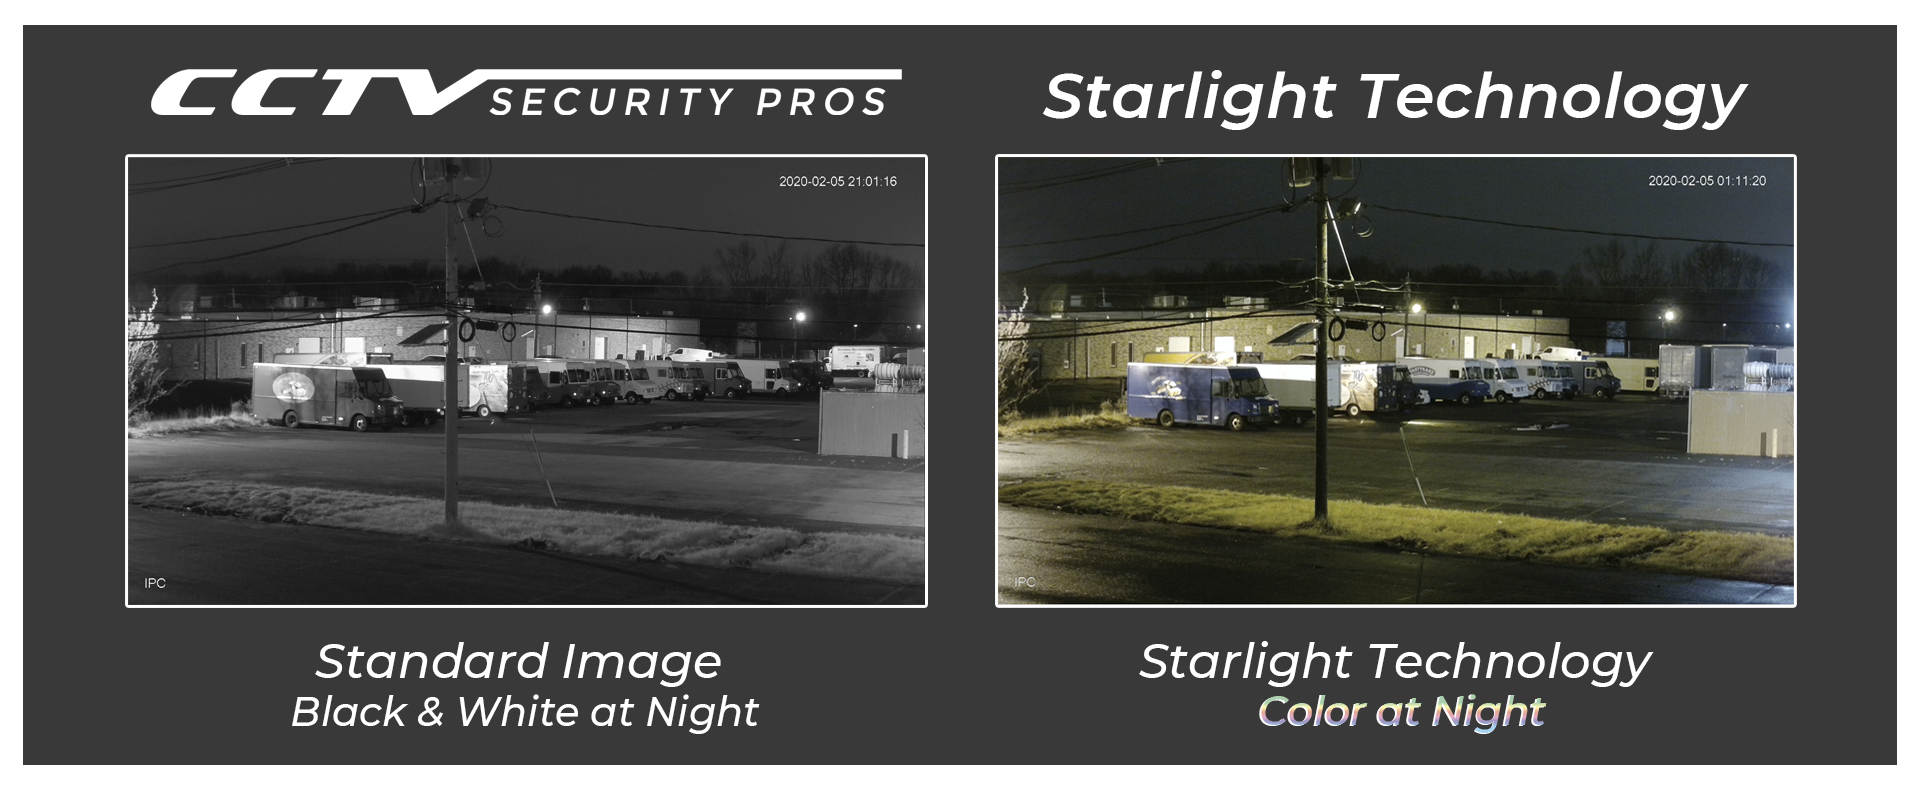 starlight-technology-option-3-.png